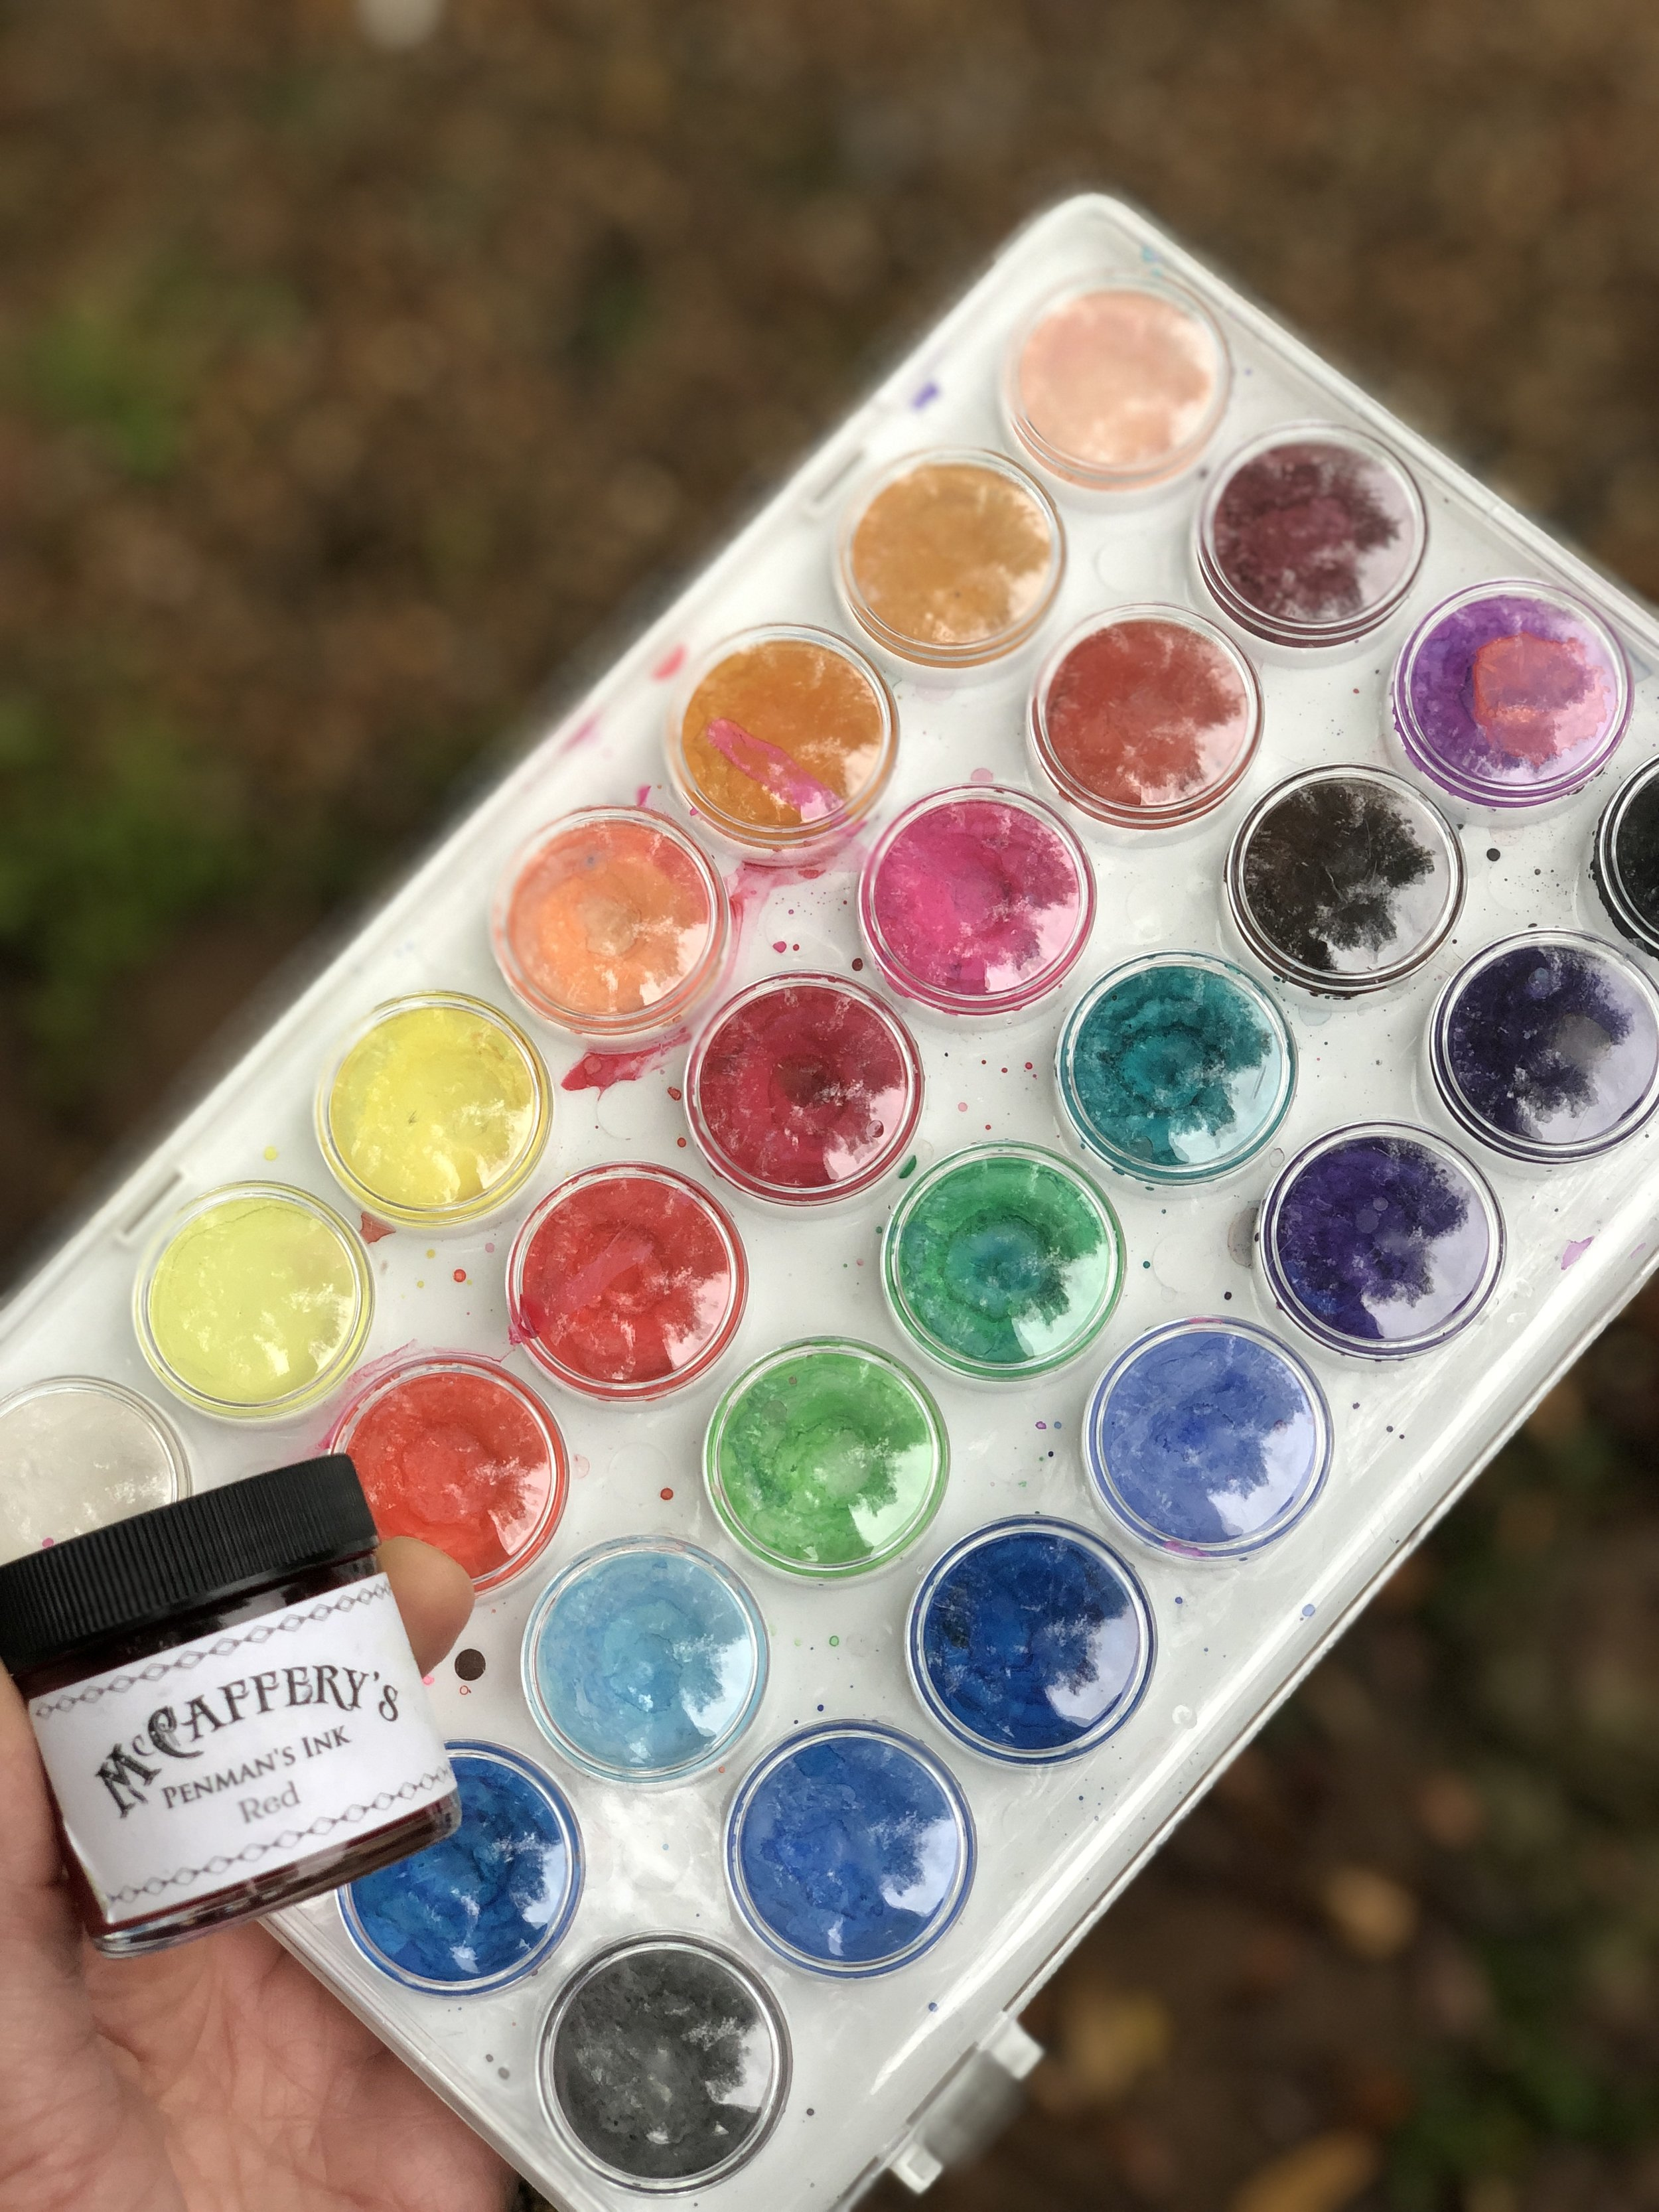 You can't find McCaffery's at Amazon but all the colors are at Paper and Ink Arts!